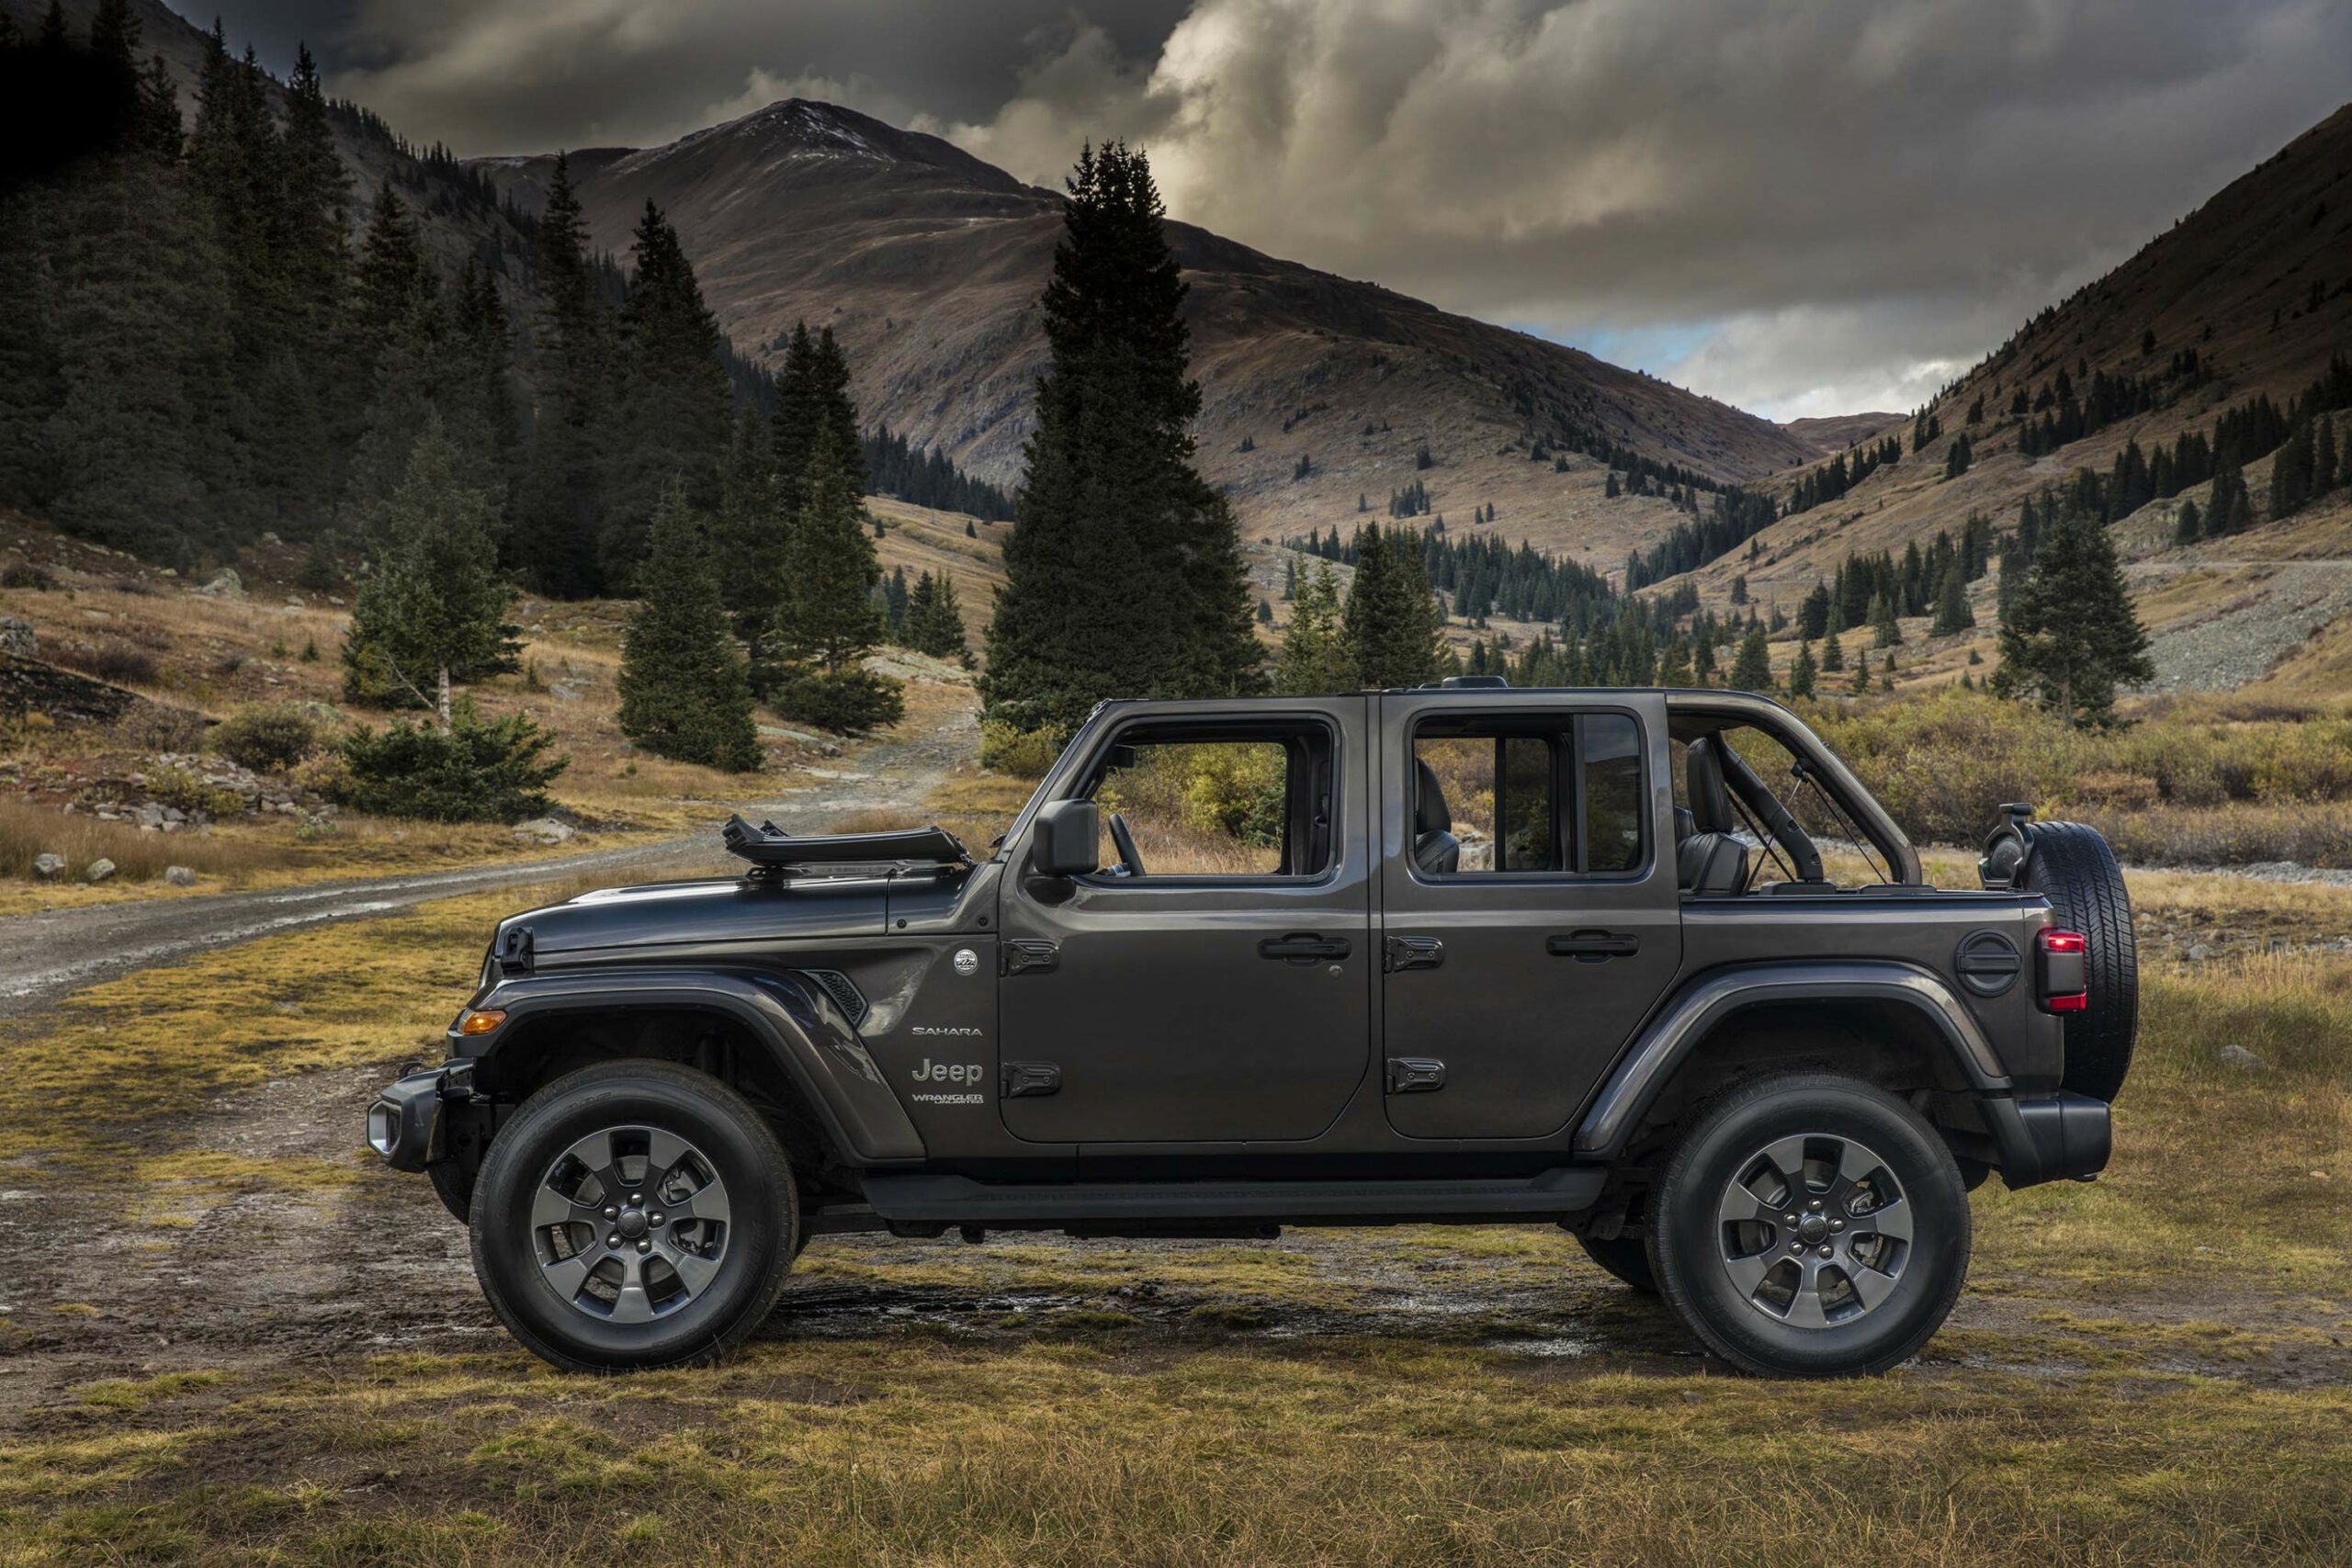 2020 Jeep Wrangler Price and Review